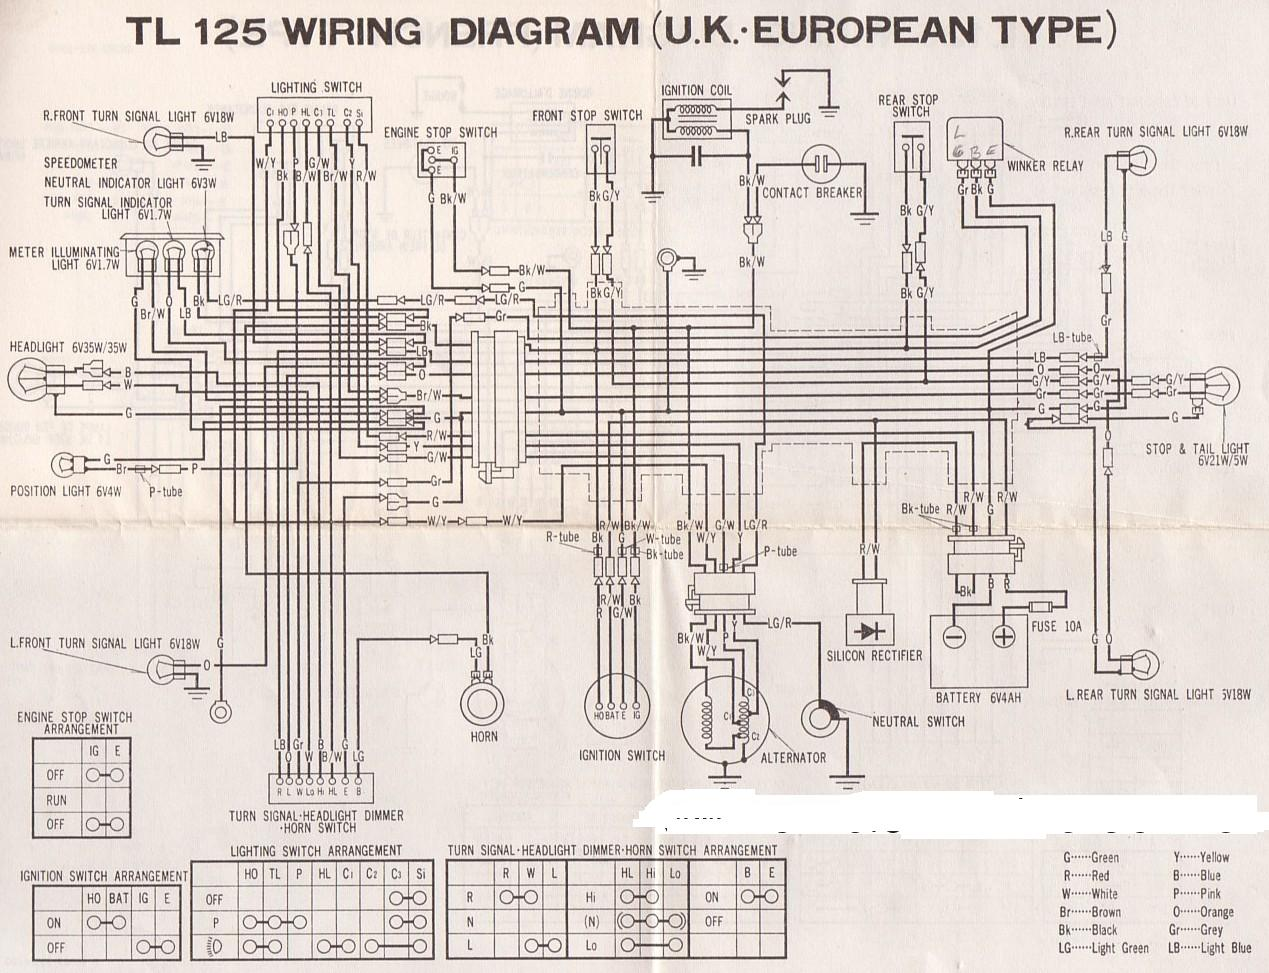 diagram] 1997 honda 300ex wiring diagram full version hd quality wiring  diagram - diagrammeweb.serensara.it  diagram database - serensara.it